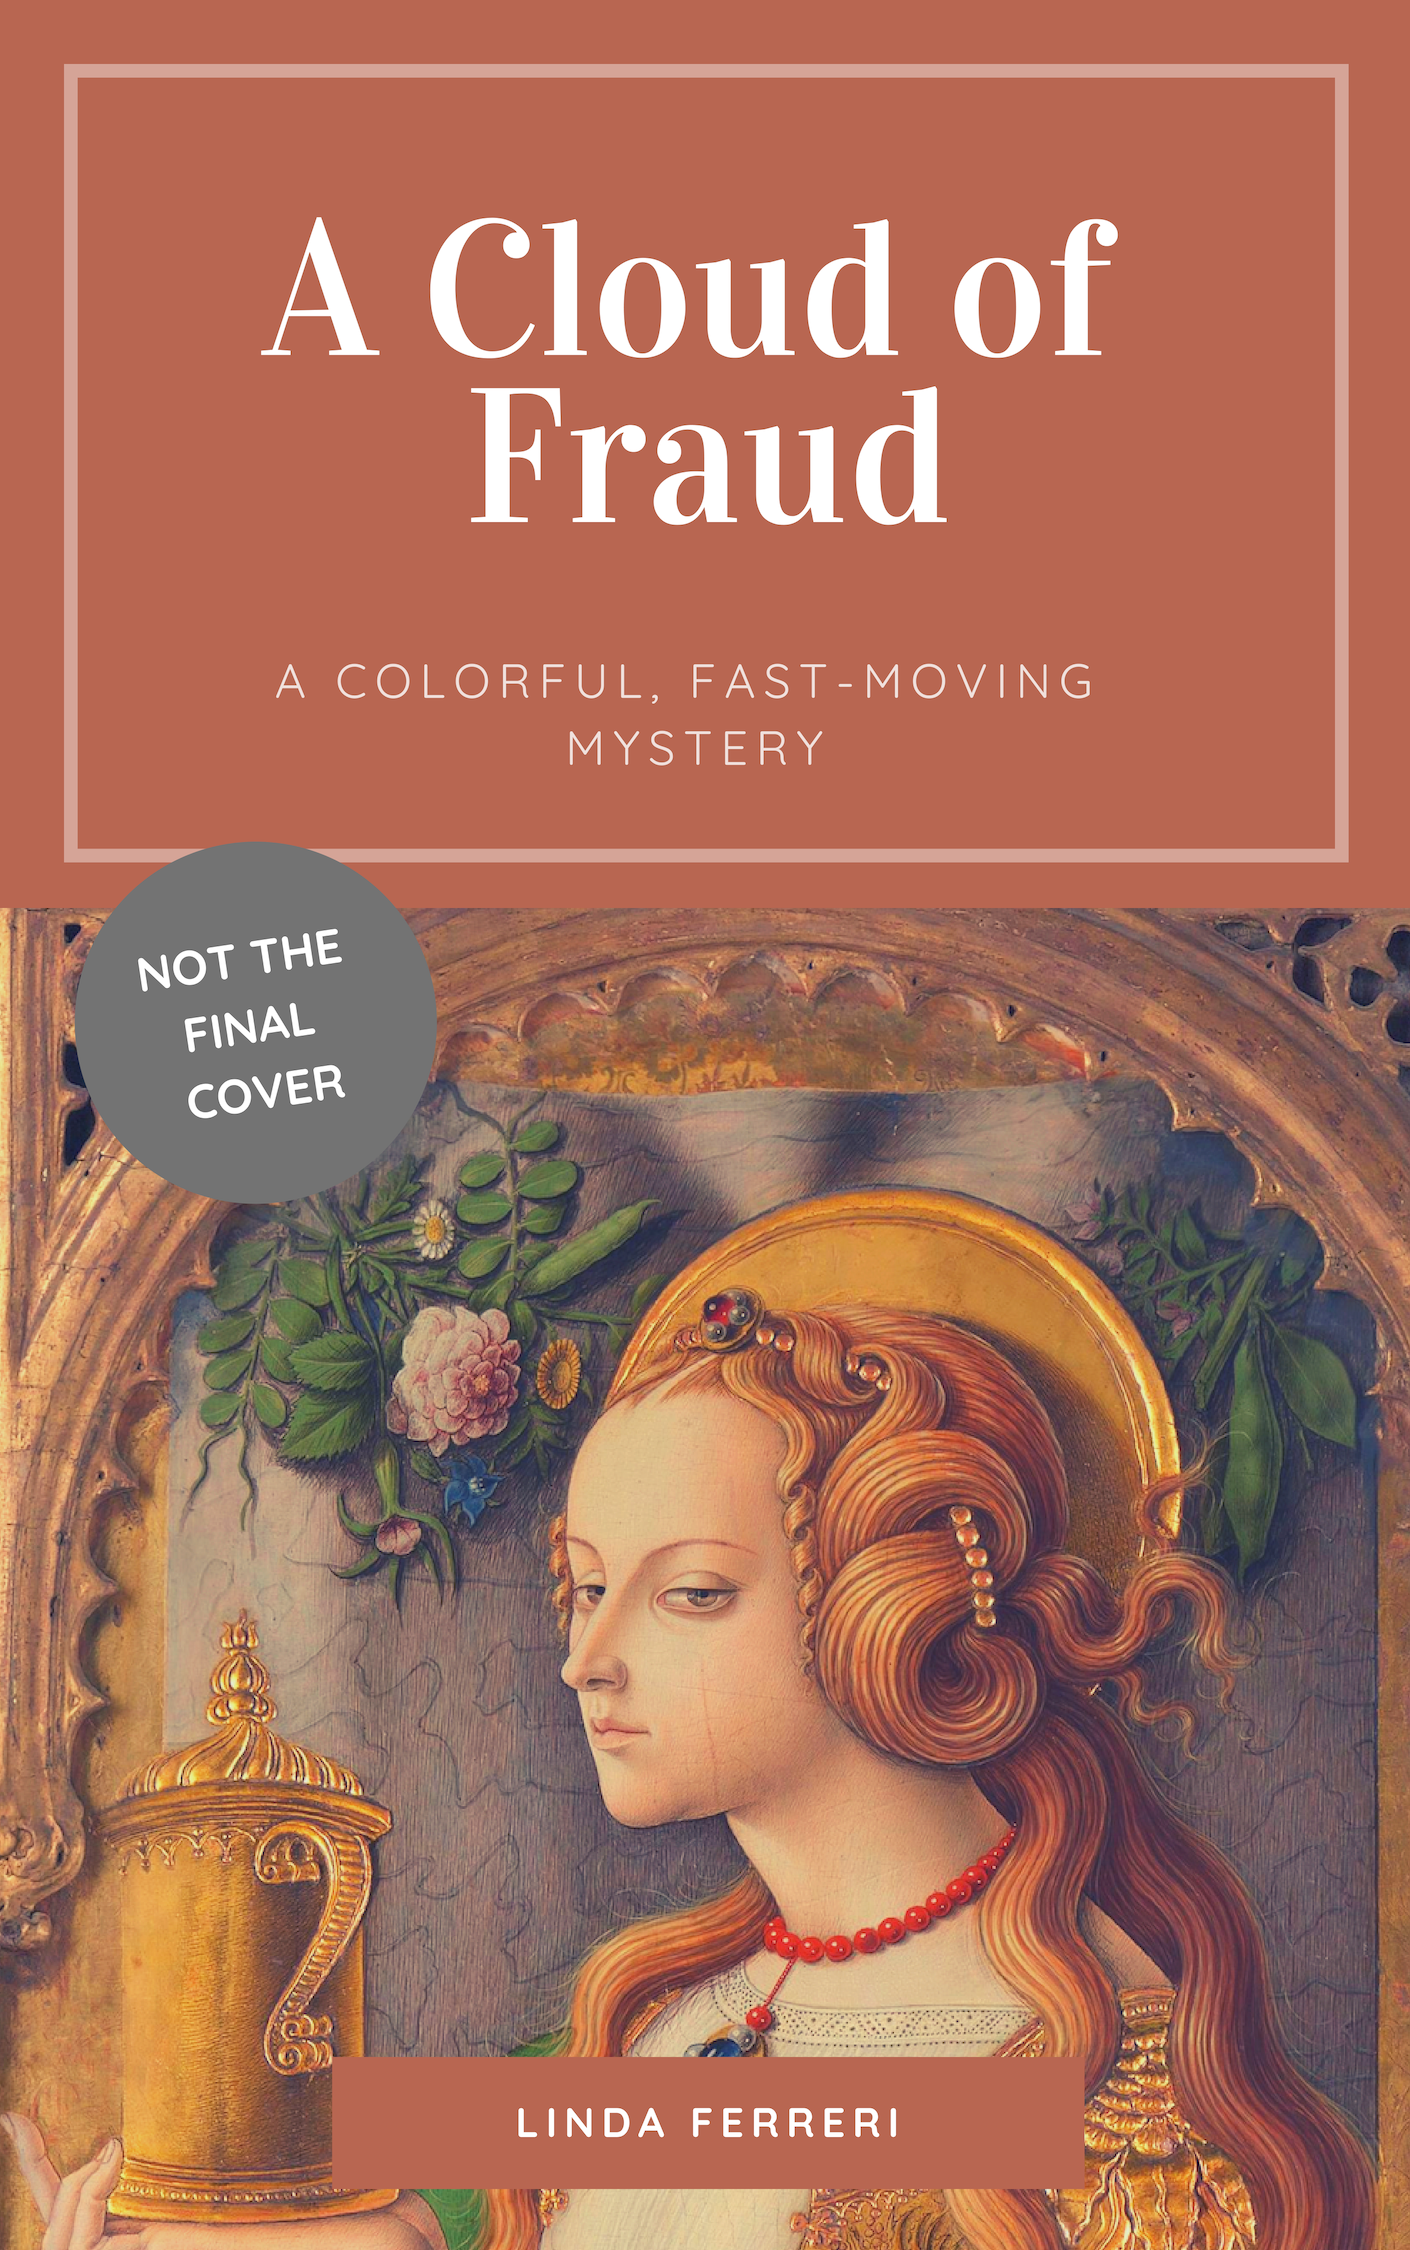 A Cloud of Fraud by Linda Ferreri